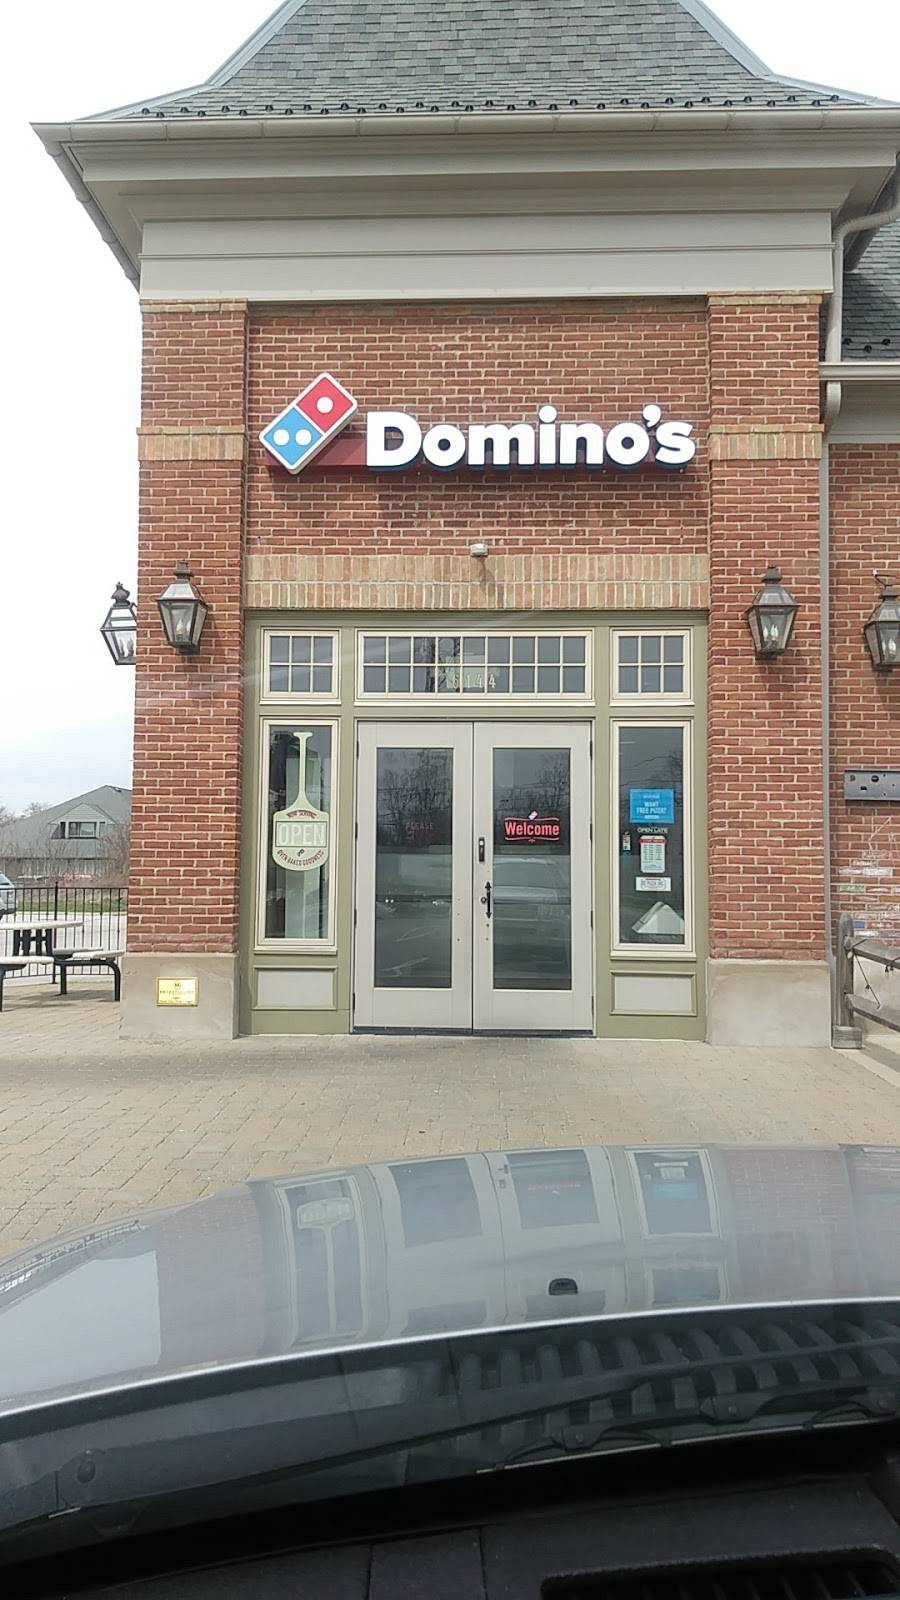 Dominos Pizza | meal delivery | 6144 E Main St, Columbus, OH 43213, USA | 6148600030 OR +1 614-860-0030